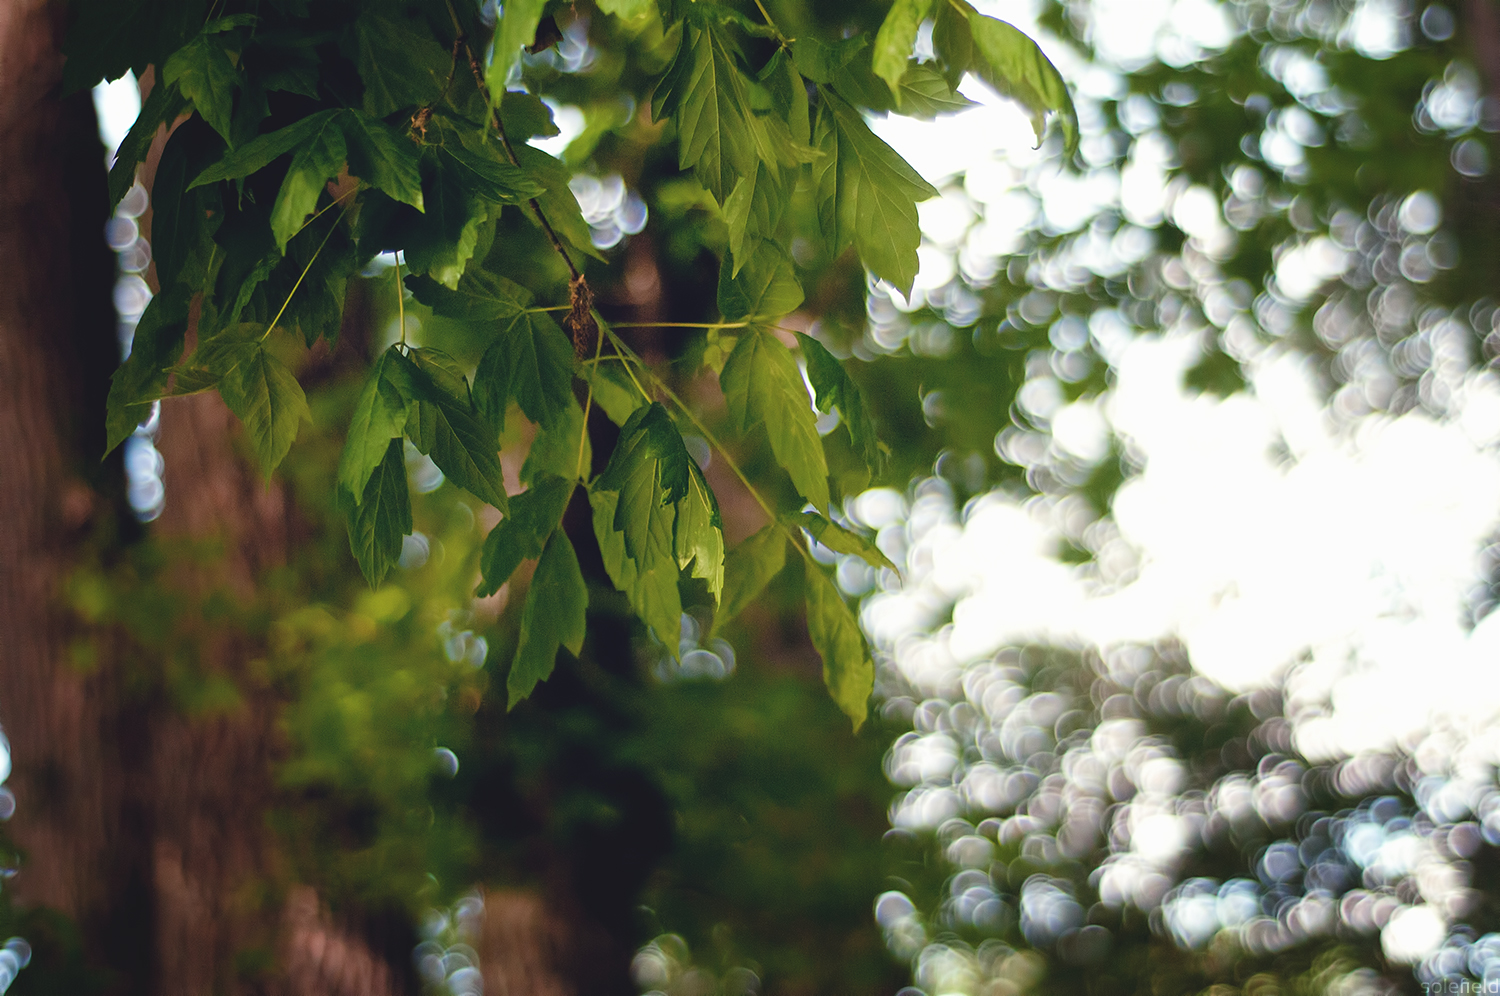 Tree Branches in the Summer